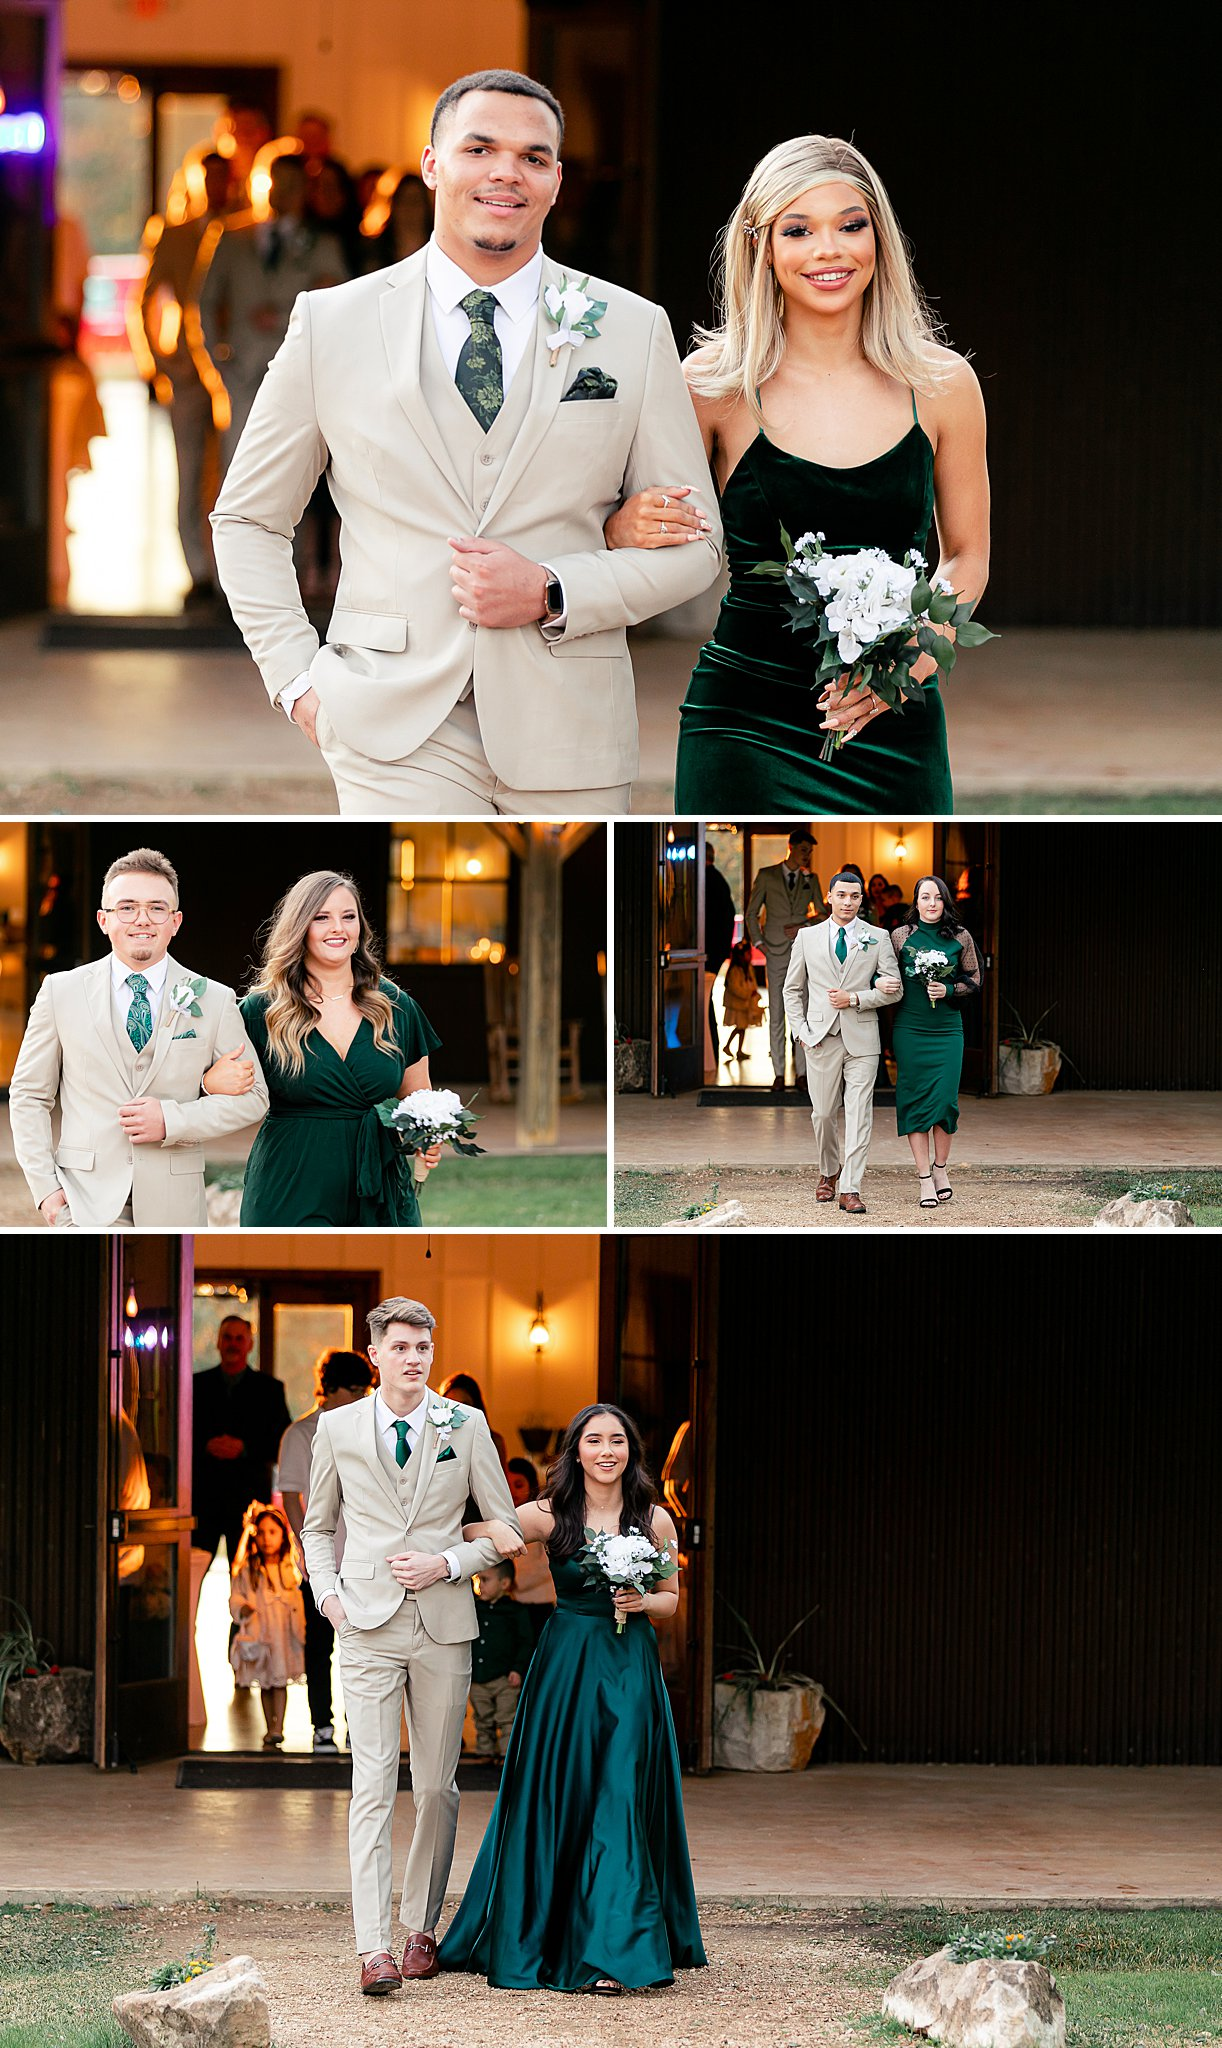 Carly-Barton-Photography-Texas-Wedding-Photographer-Western-Sky-Wedding-Event-Venue-Emerald-Green-Theme_0013.jpg